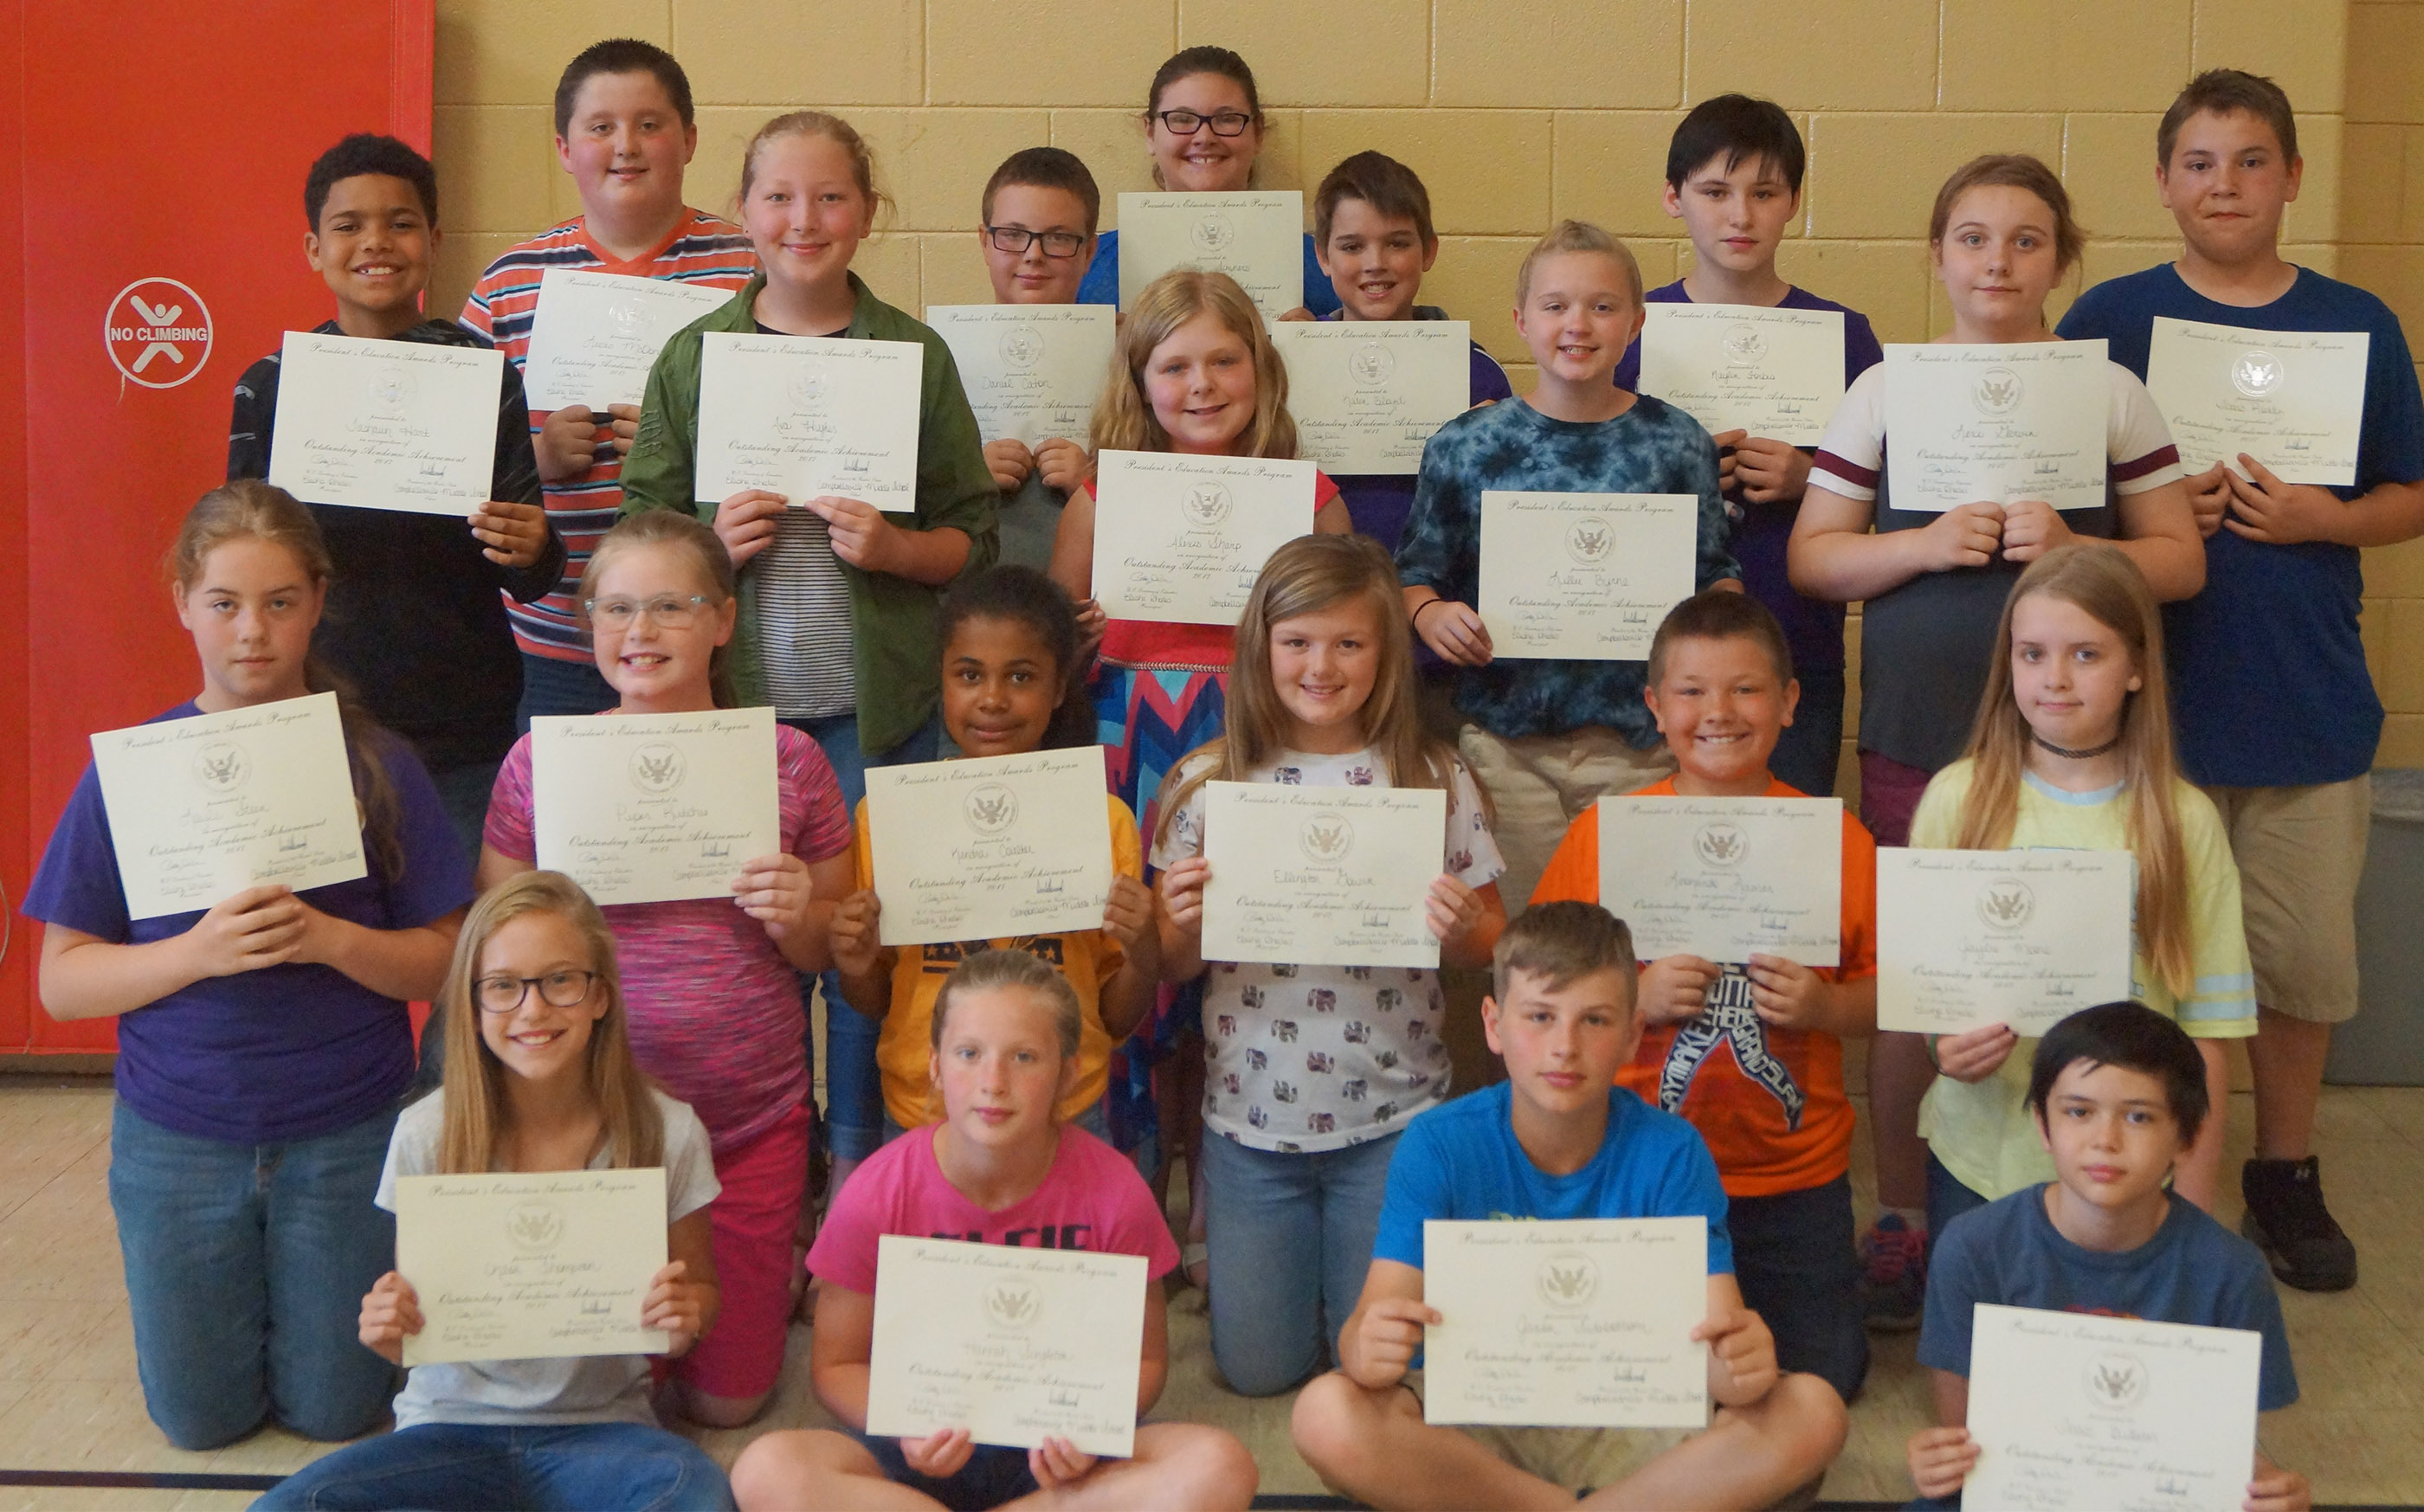 Fifth-graders receiving the president's award for educational achievement are, from left, front, Chloe Thompson, Hannah Singleton, Jaxon Sidebottom and Isaac Billeter. Second row, Layla Steen, Piper Ritchie, Kendra Coulter, Ellington Gowin, Leo Lamer and Jaylie Moore. Third row, Tashaun Hart, Ava Hughes, Alexis Sharp, Lillee Byrne and Lexi Garvin. Back, Luke McDonald, Daniel Caton, Allison Sumners, Kaden Bloyd, Kaylin Forbis and Isaac Roddy.